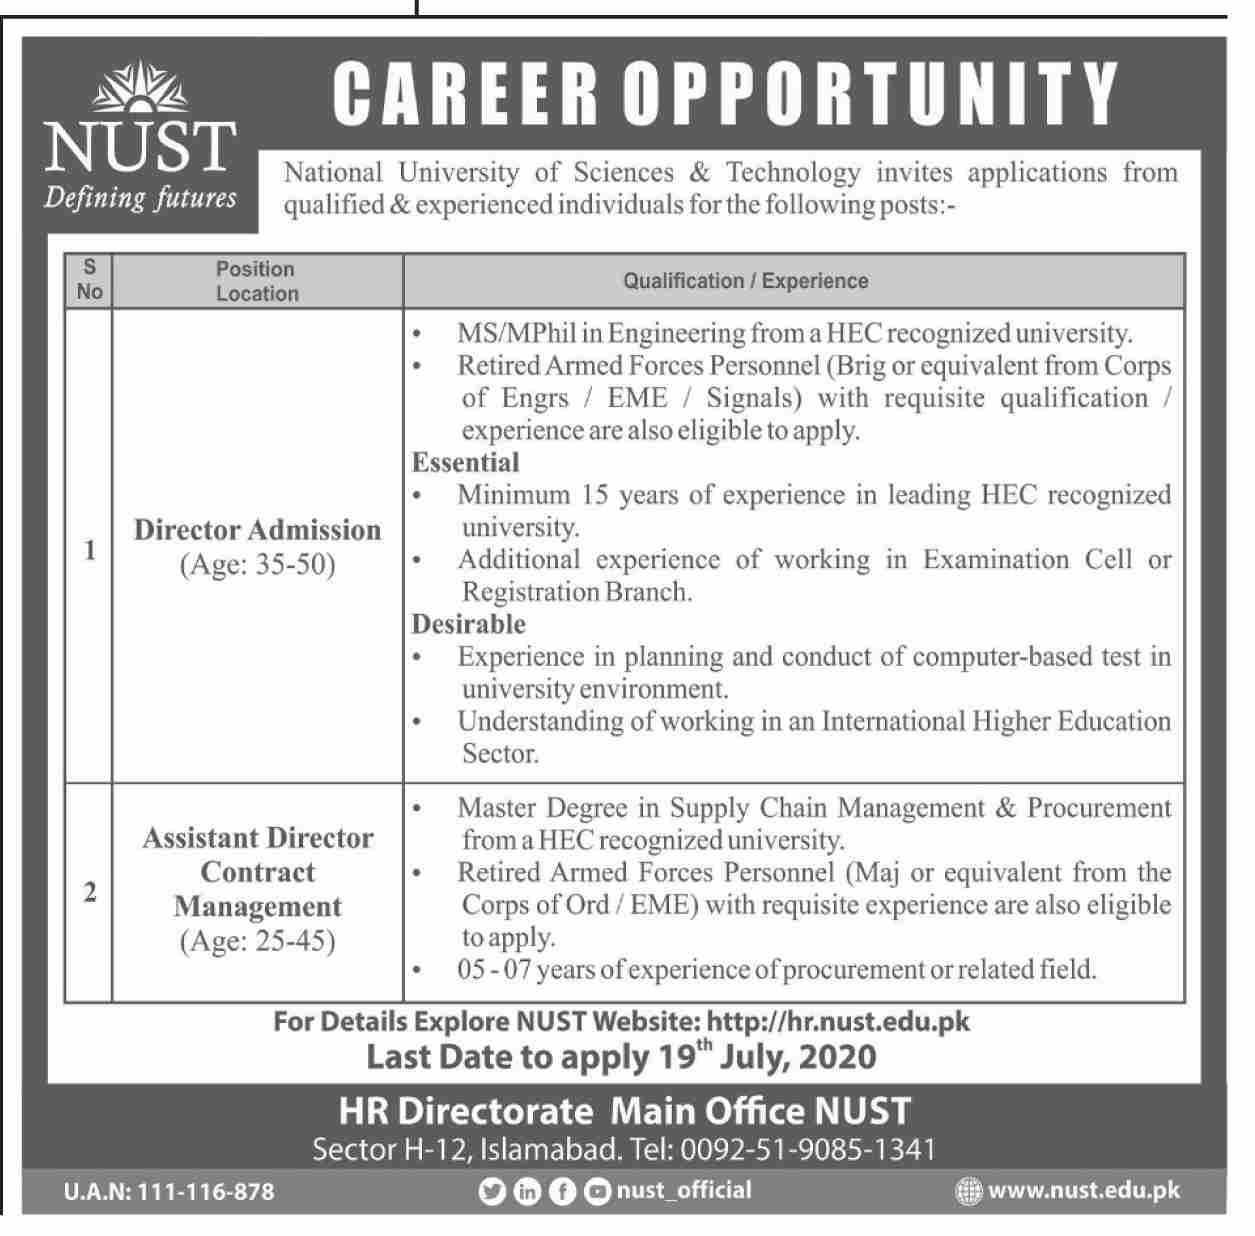 National University of Sciences & Technology NUST Jobs June 2020